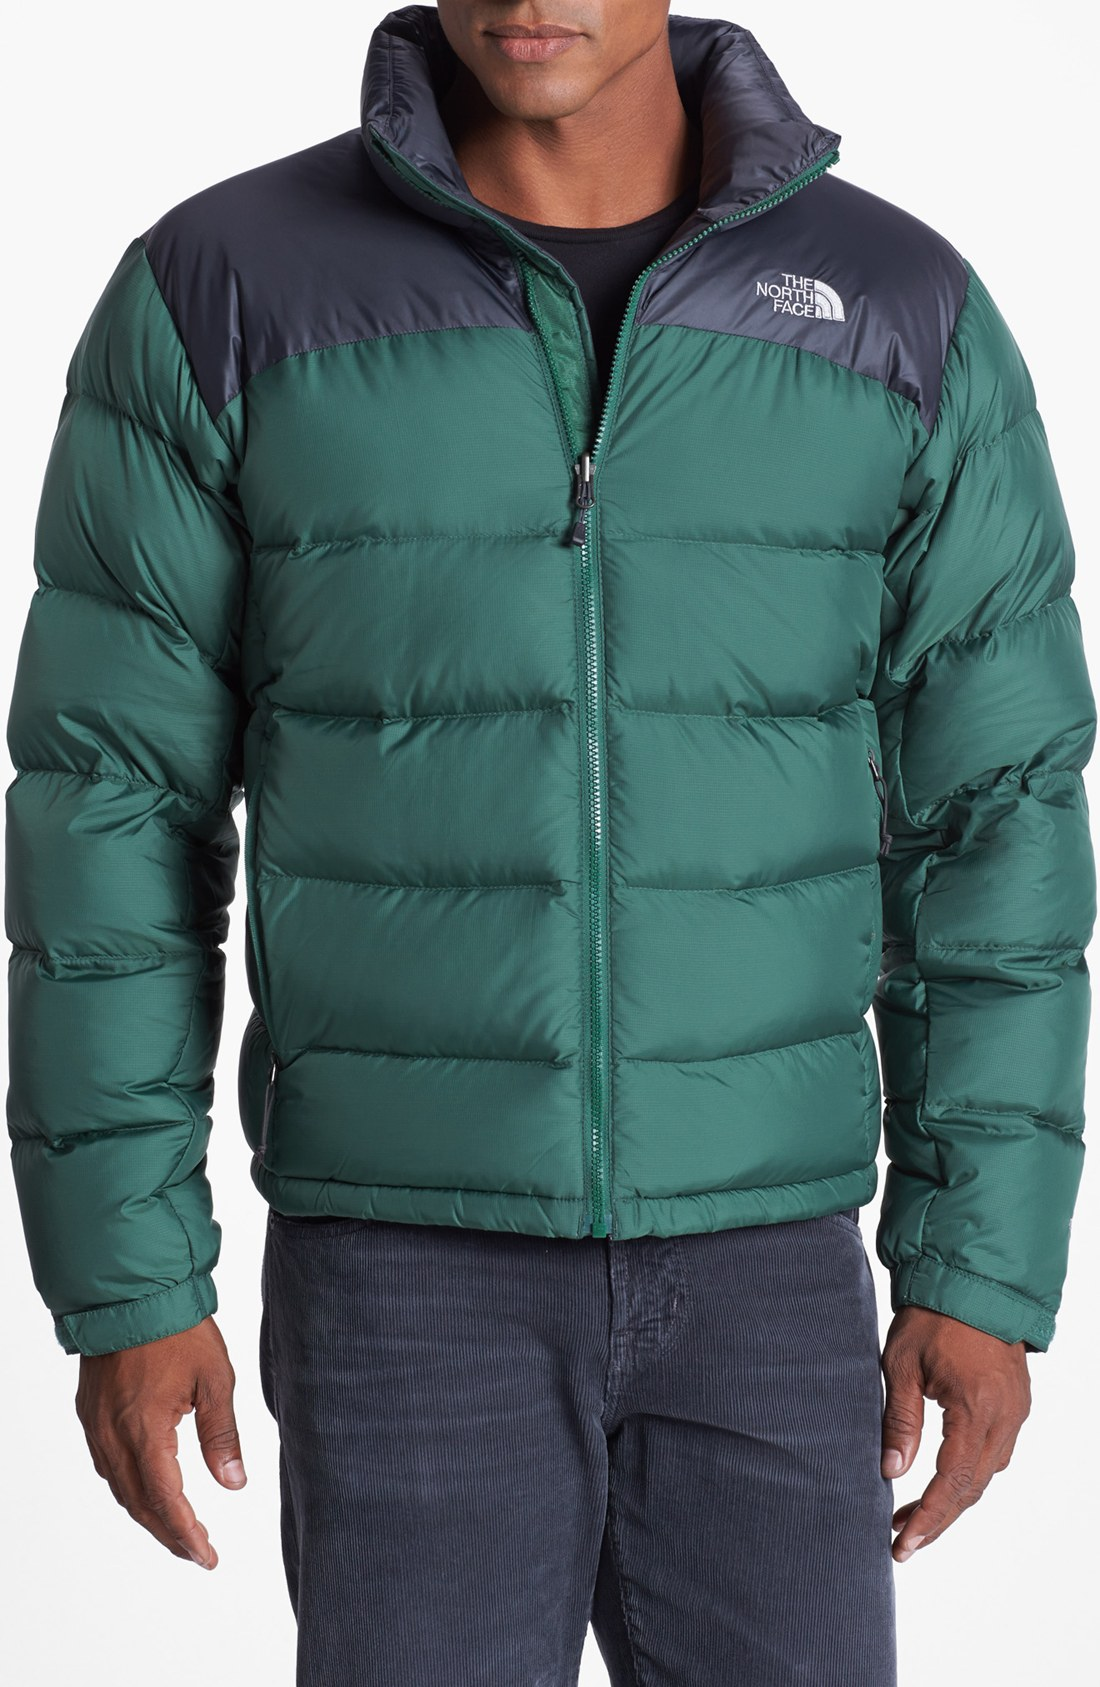 the north face nuptse 2 down jacket in green for men lyst. Black Bedroom Furniture Sets. Home Design Ideas